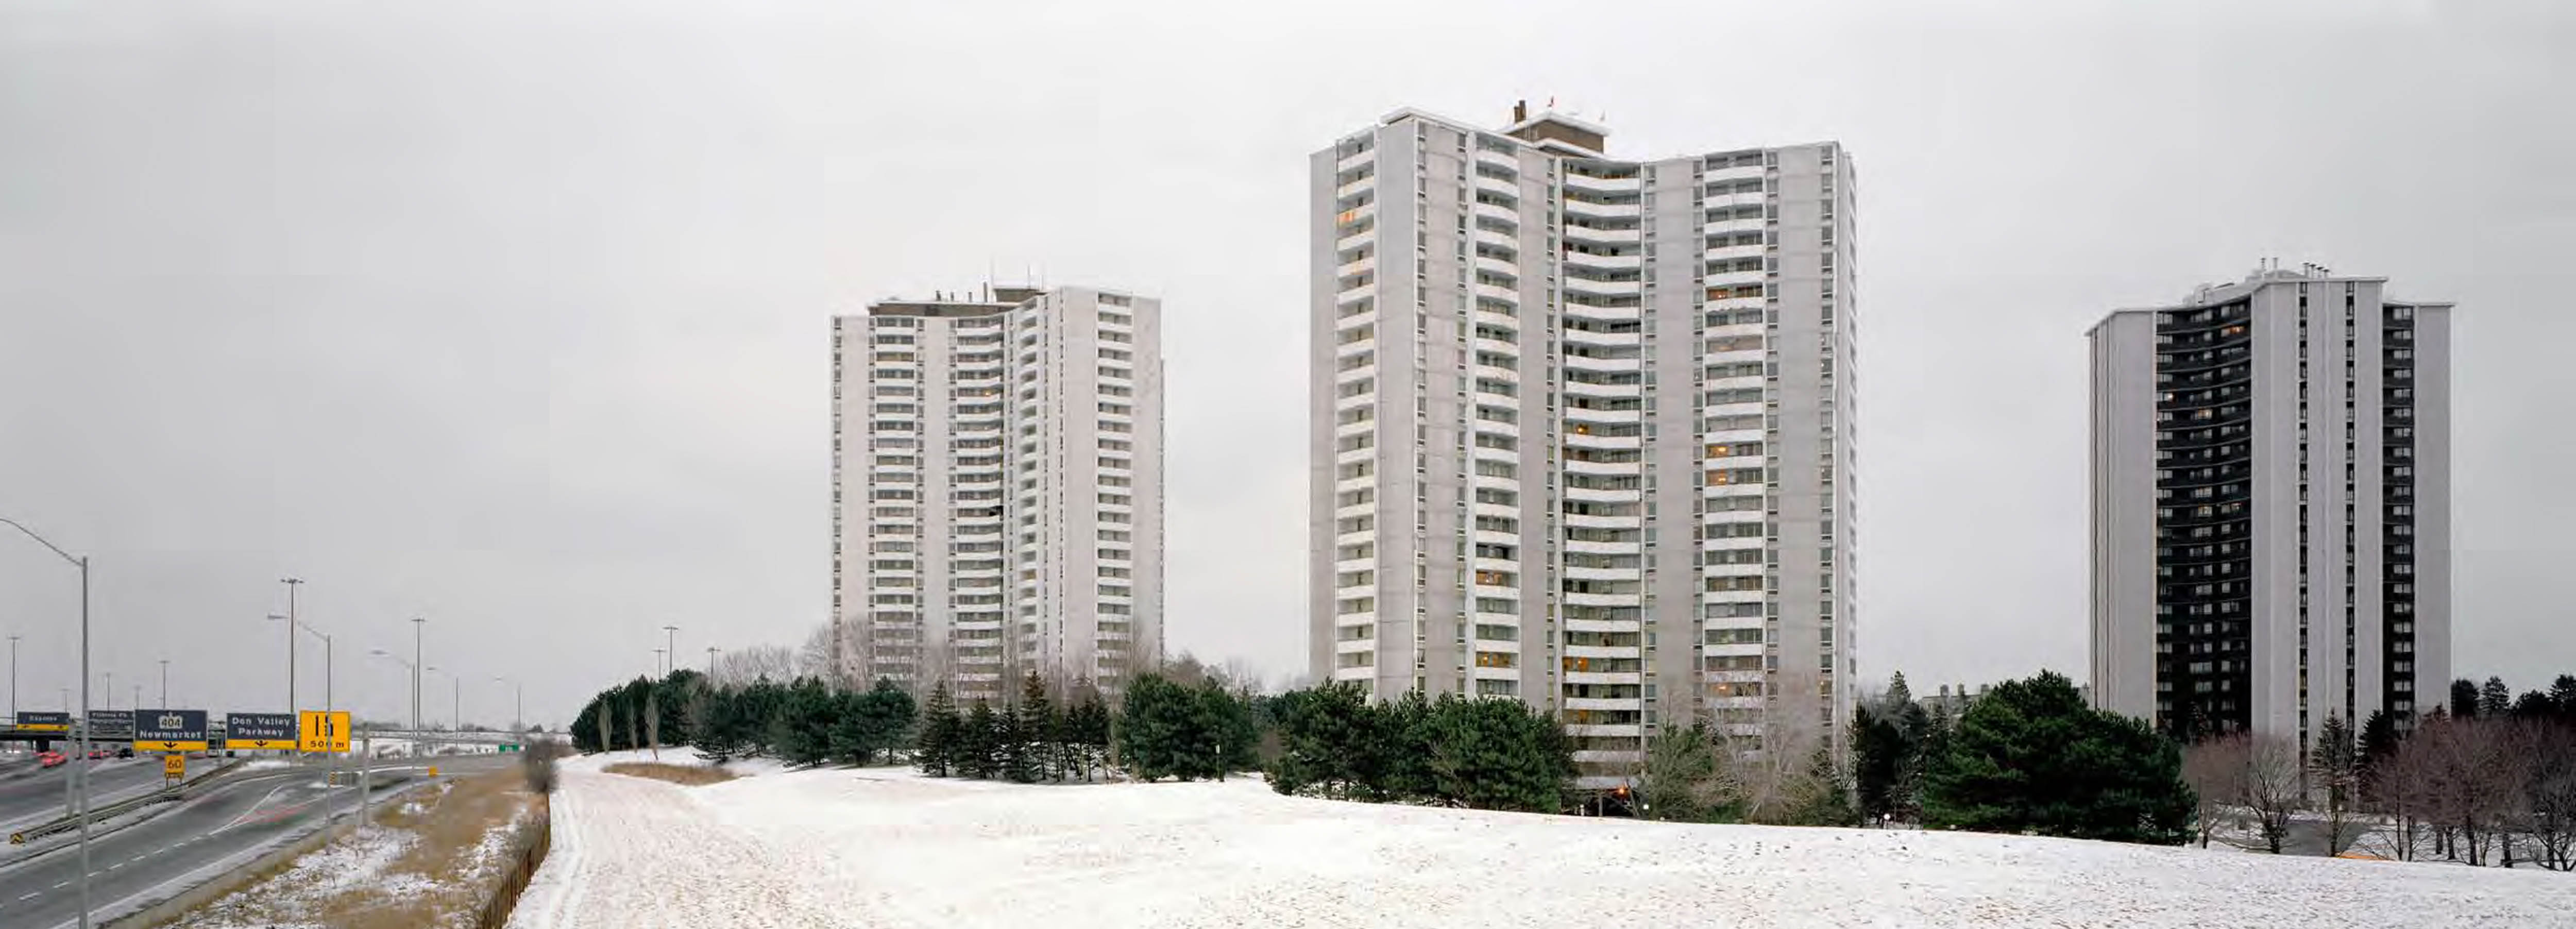 Tall apartment towers surrounded by trees and snow-covered lawns next to a highway